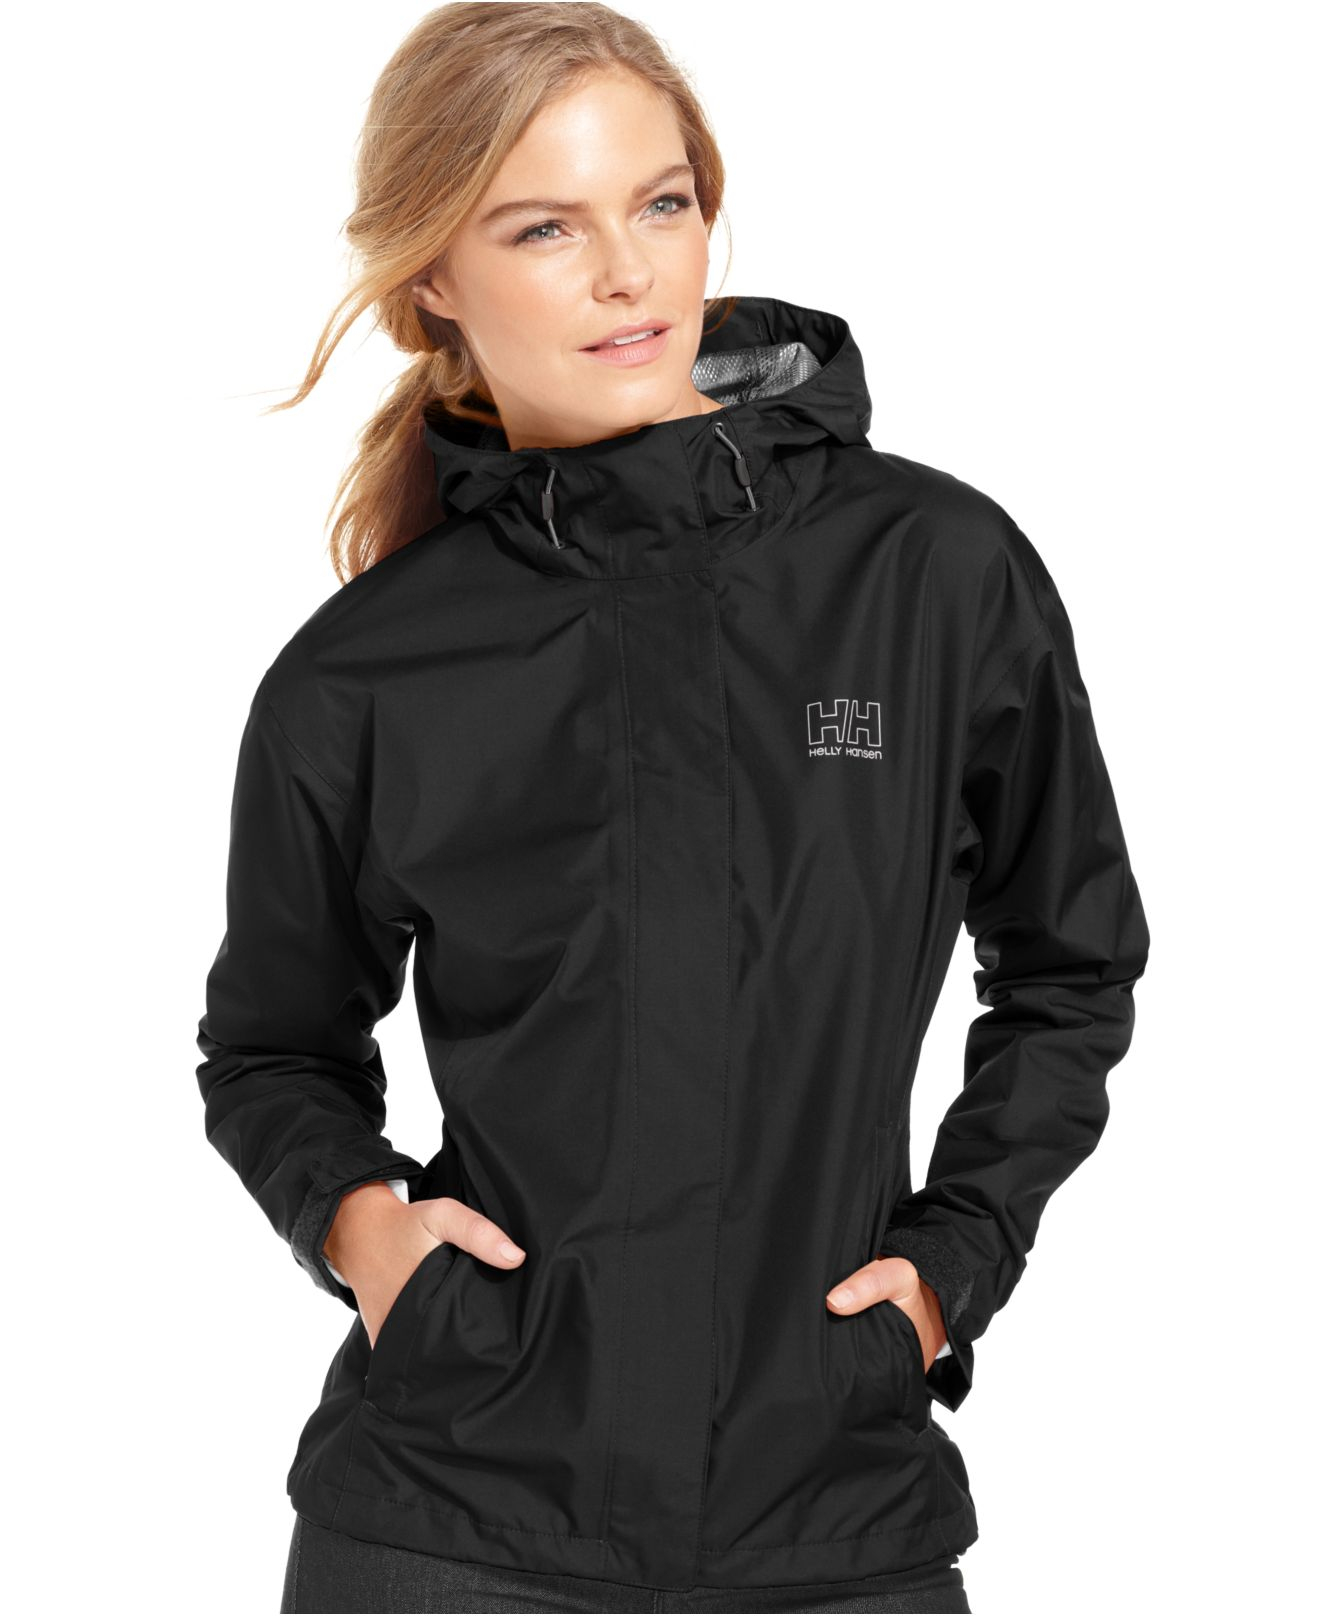 Helly hansen Seven J Hooded Rain Jacket in Black | Lyst